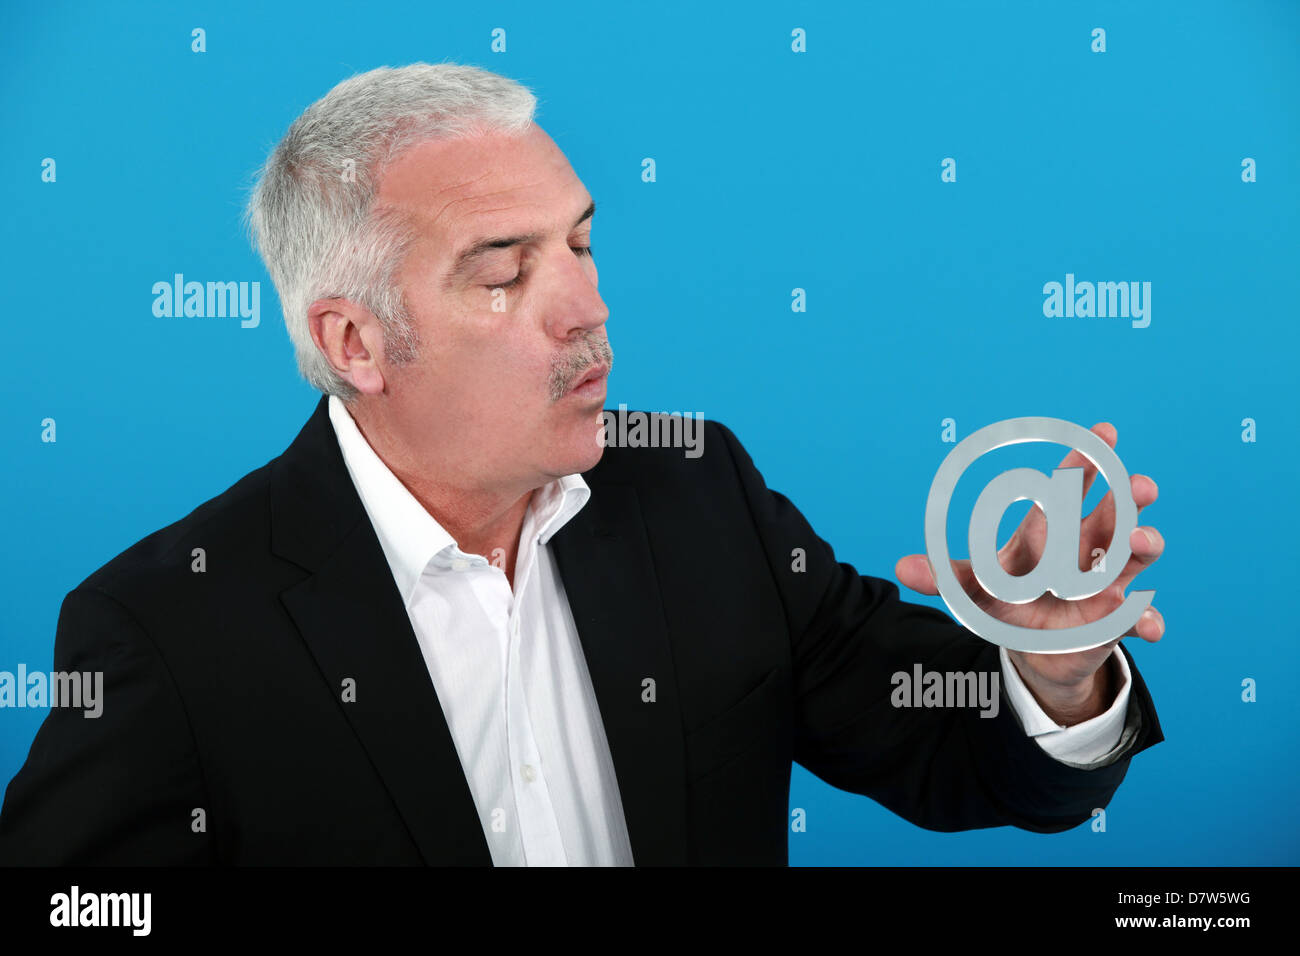 Man holding an @ sign - Stock Image